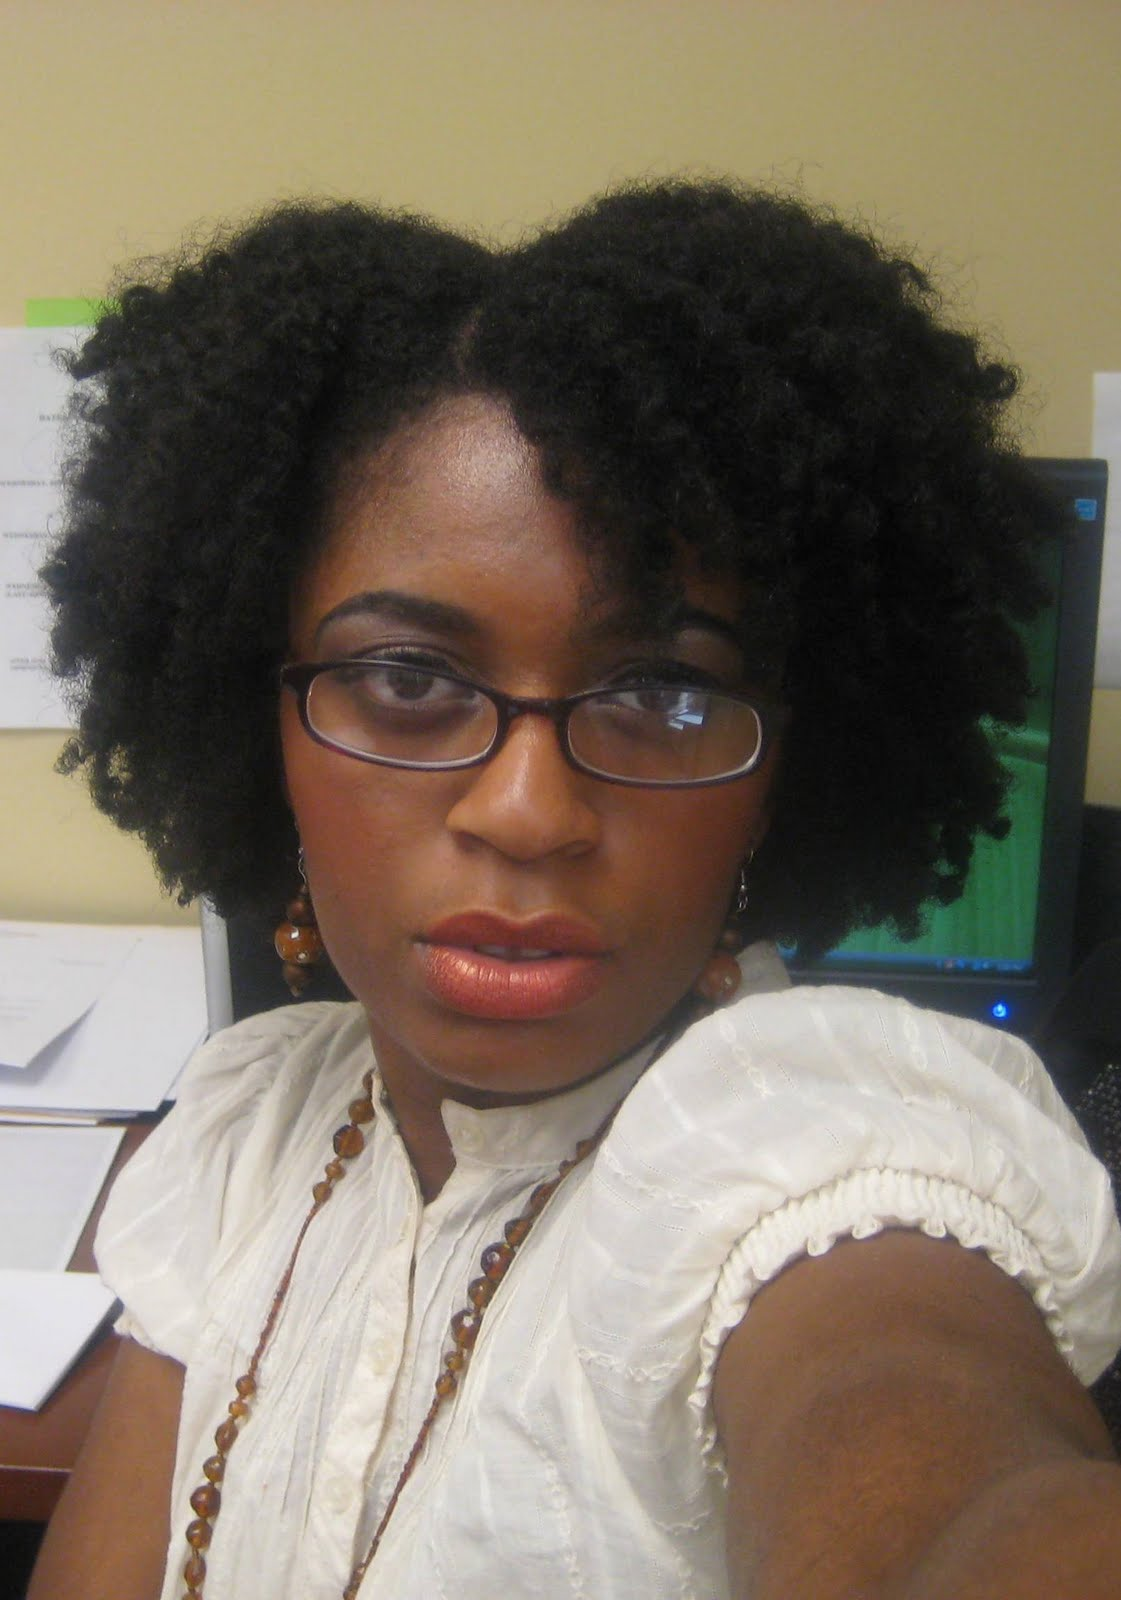 Awe Inspiring Naturally Elegant Hairstyle Braid Out Or Textured Afro Hairstyles For Women Draintrainus